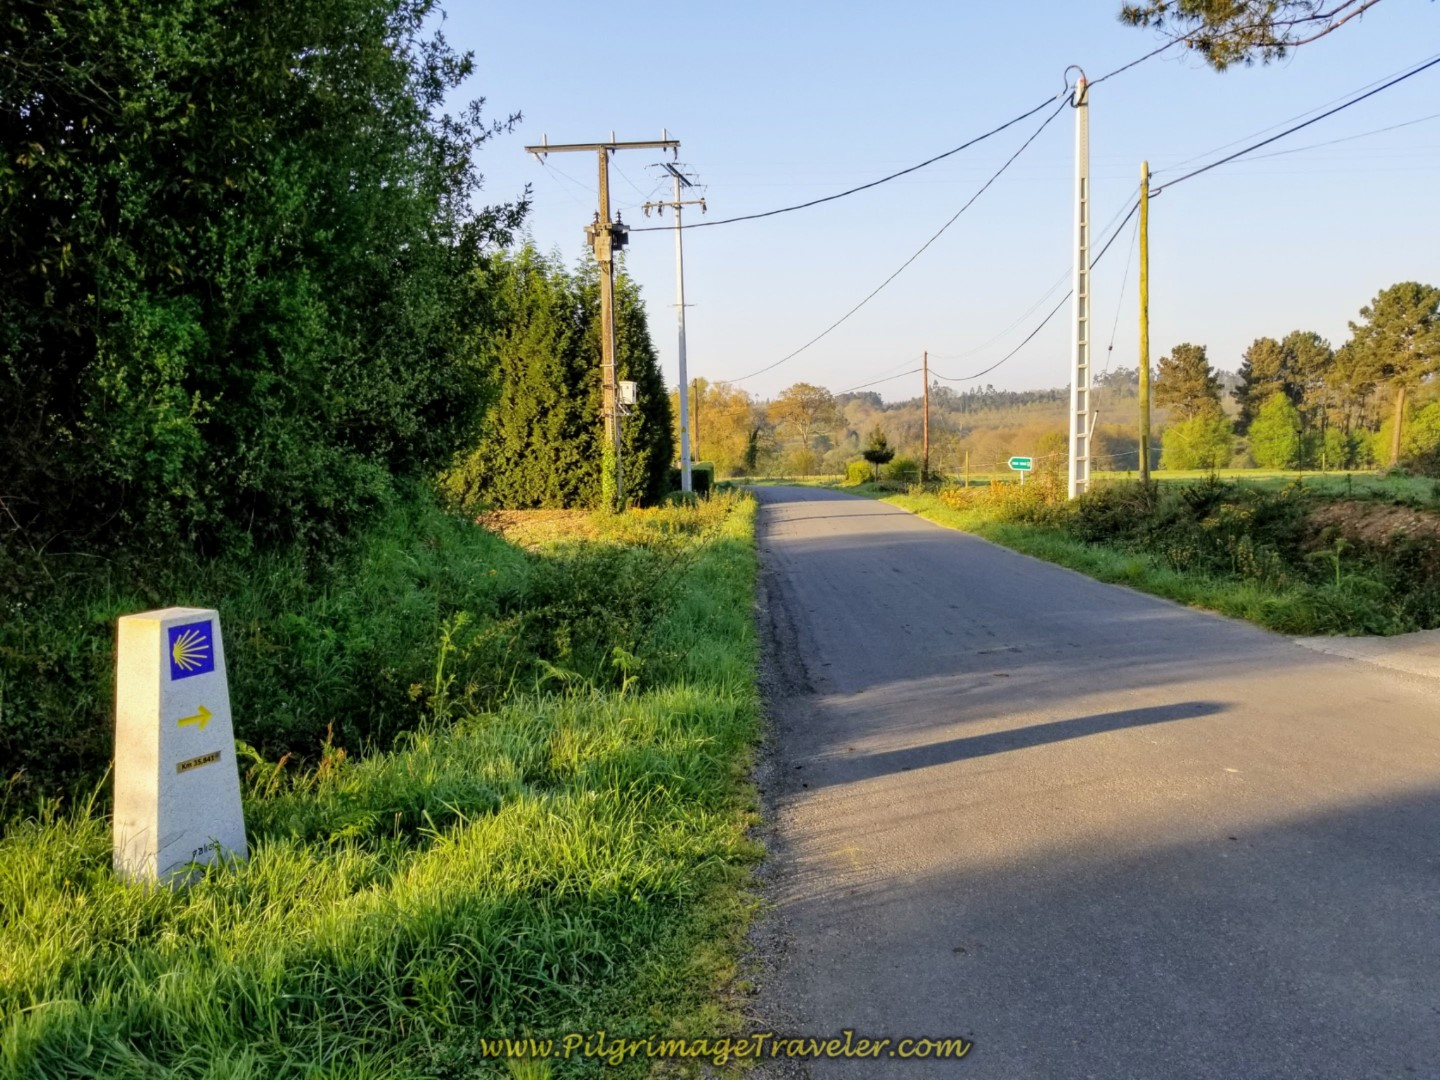 Walk Straight On at Kilometer Marker 35.8 on day seven of the Camino Inglés